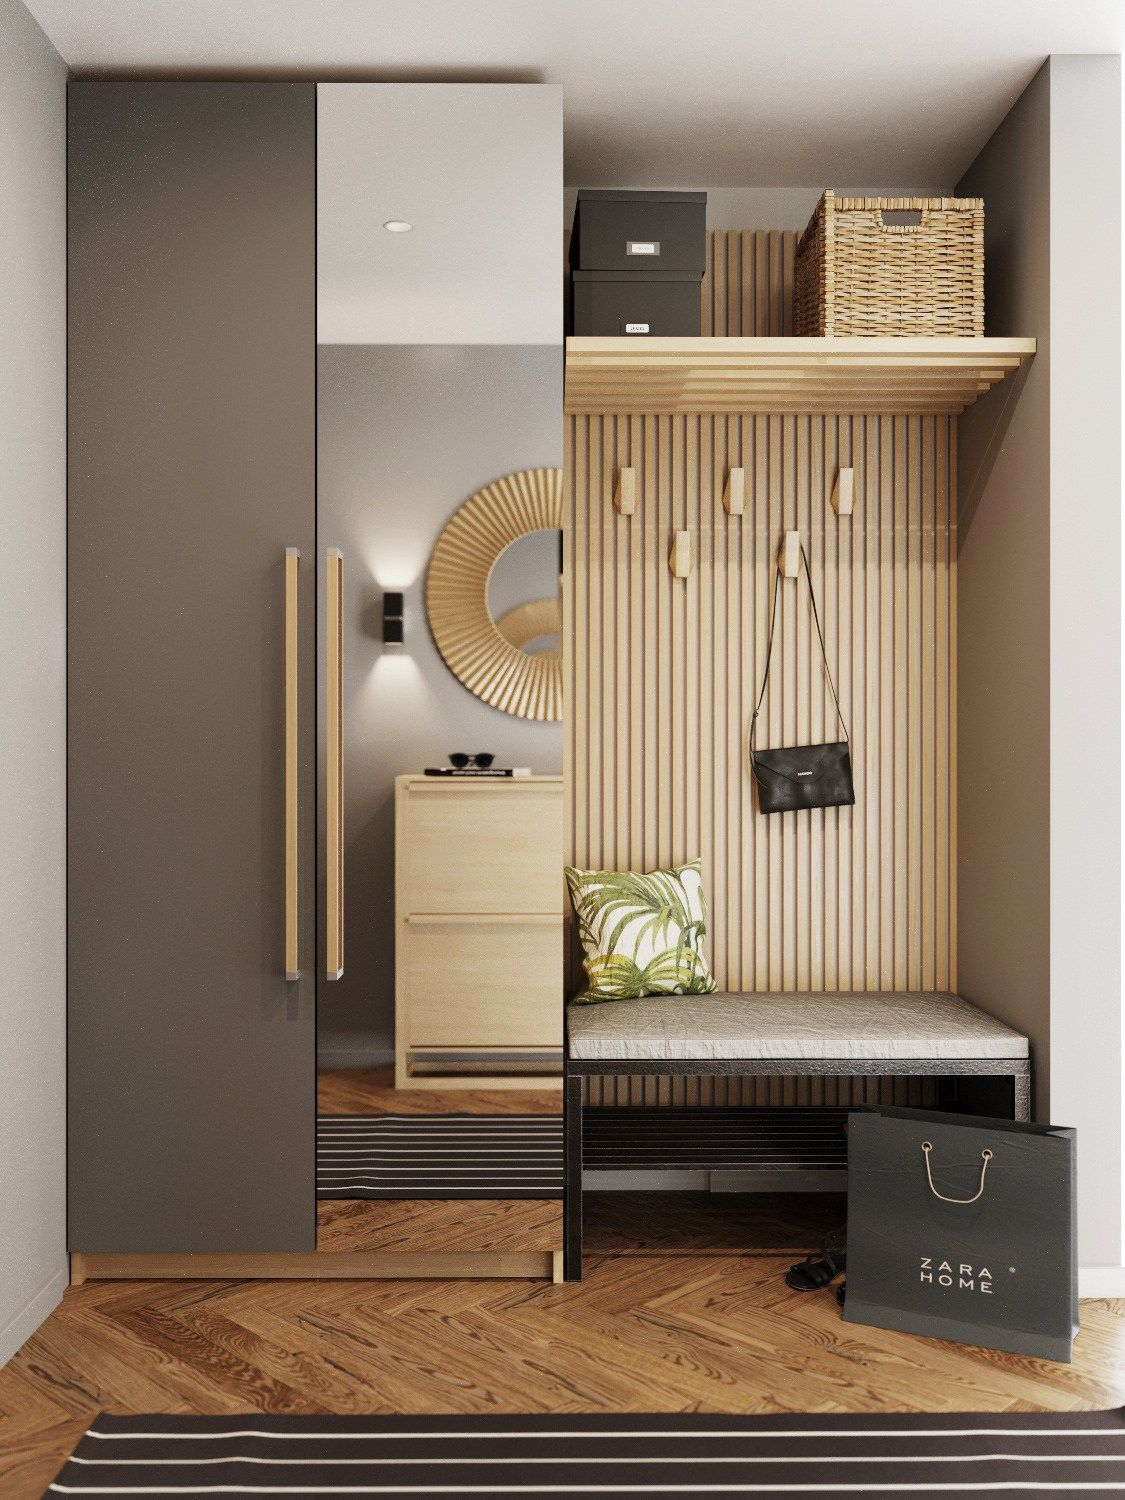 entrance, wooden floor, wooden grid wall, wooden shelvs, black bench, mirror cabinet